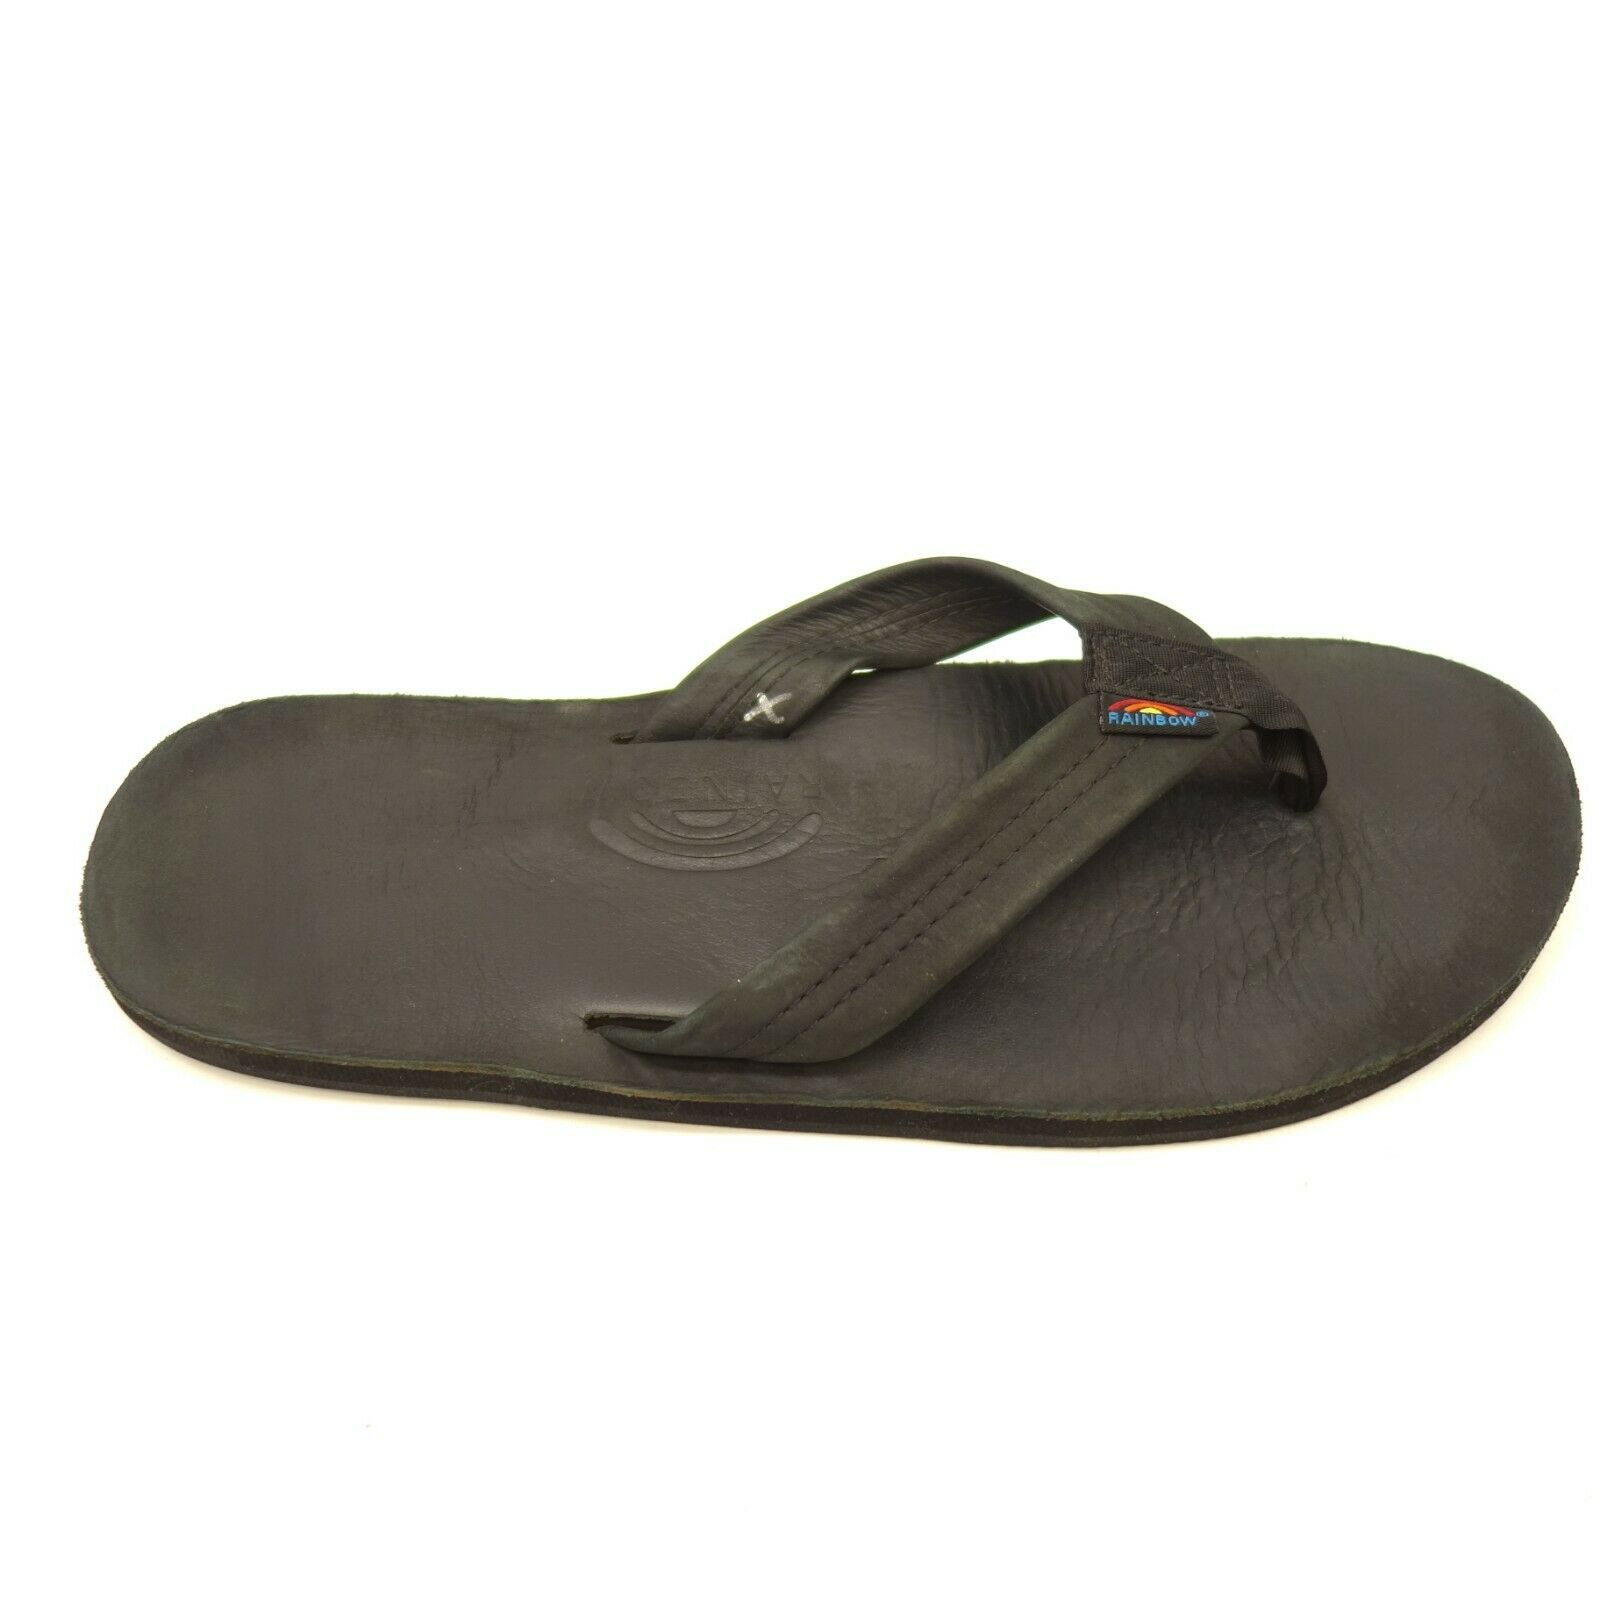 Rainbow Strap Premier Leather Mens US 11-12 Single Layer Arch Flip Flop Sandals